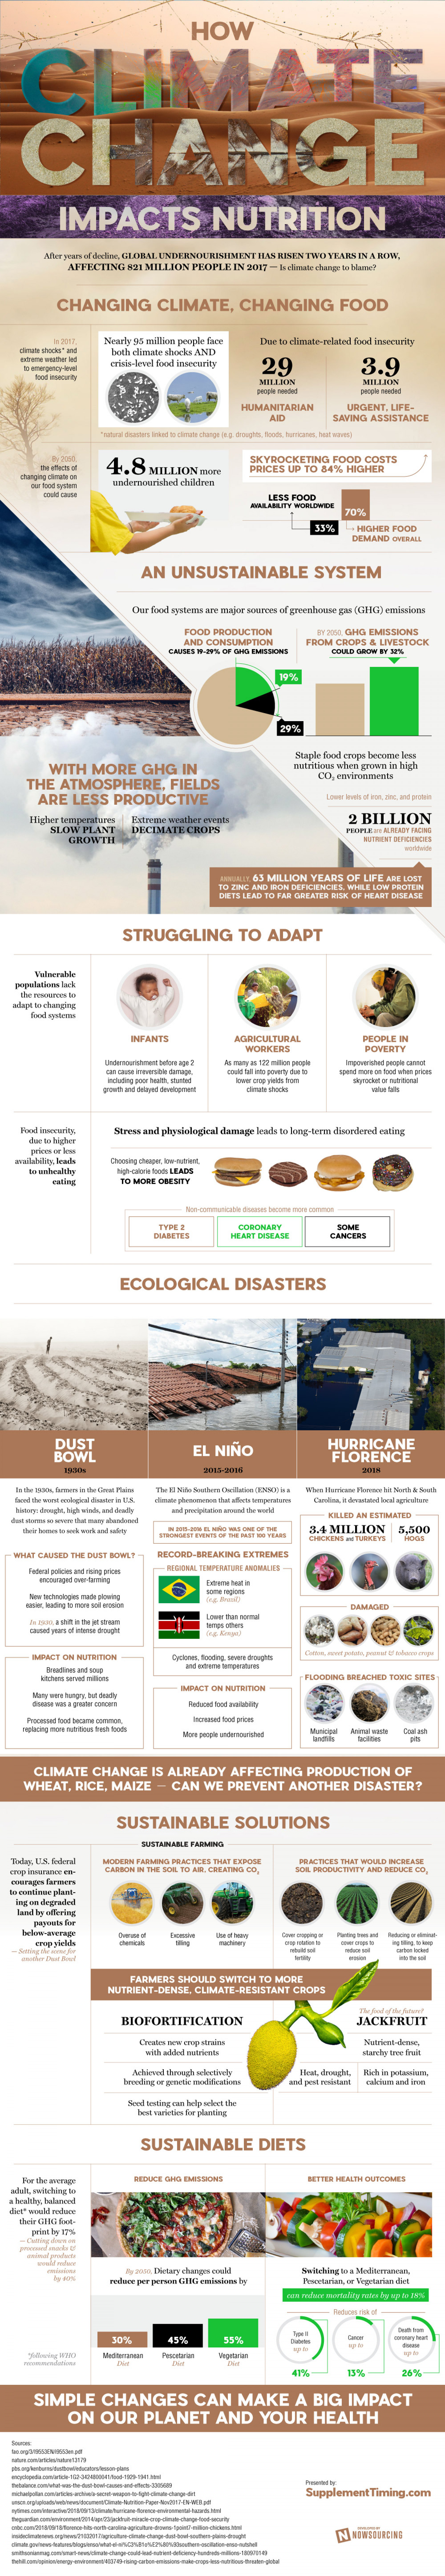 How Climate Change Will Impact Nutrition Infographic